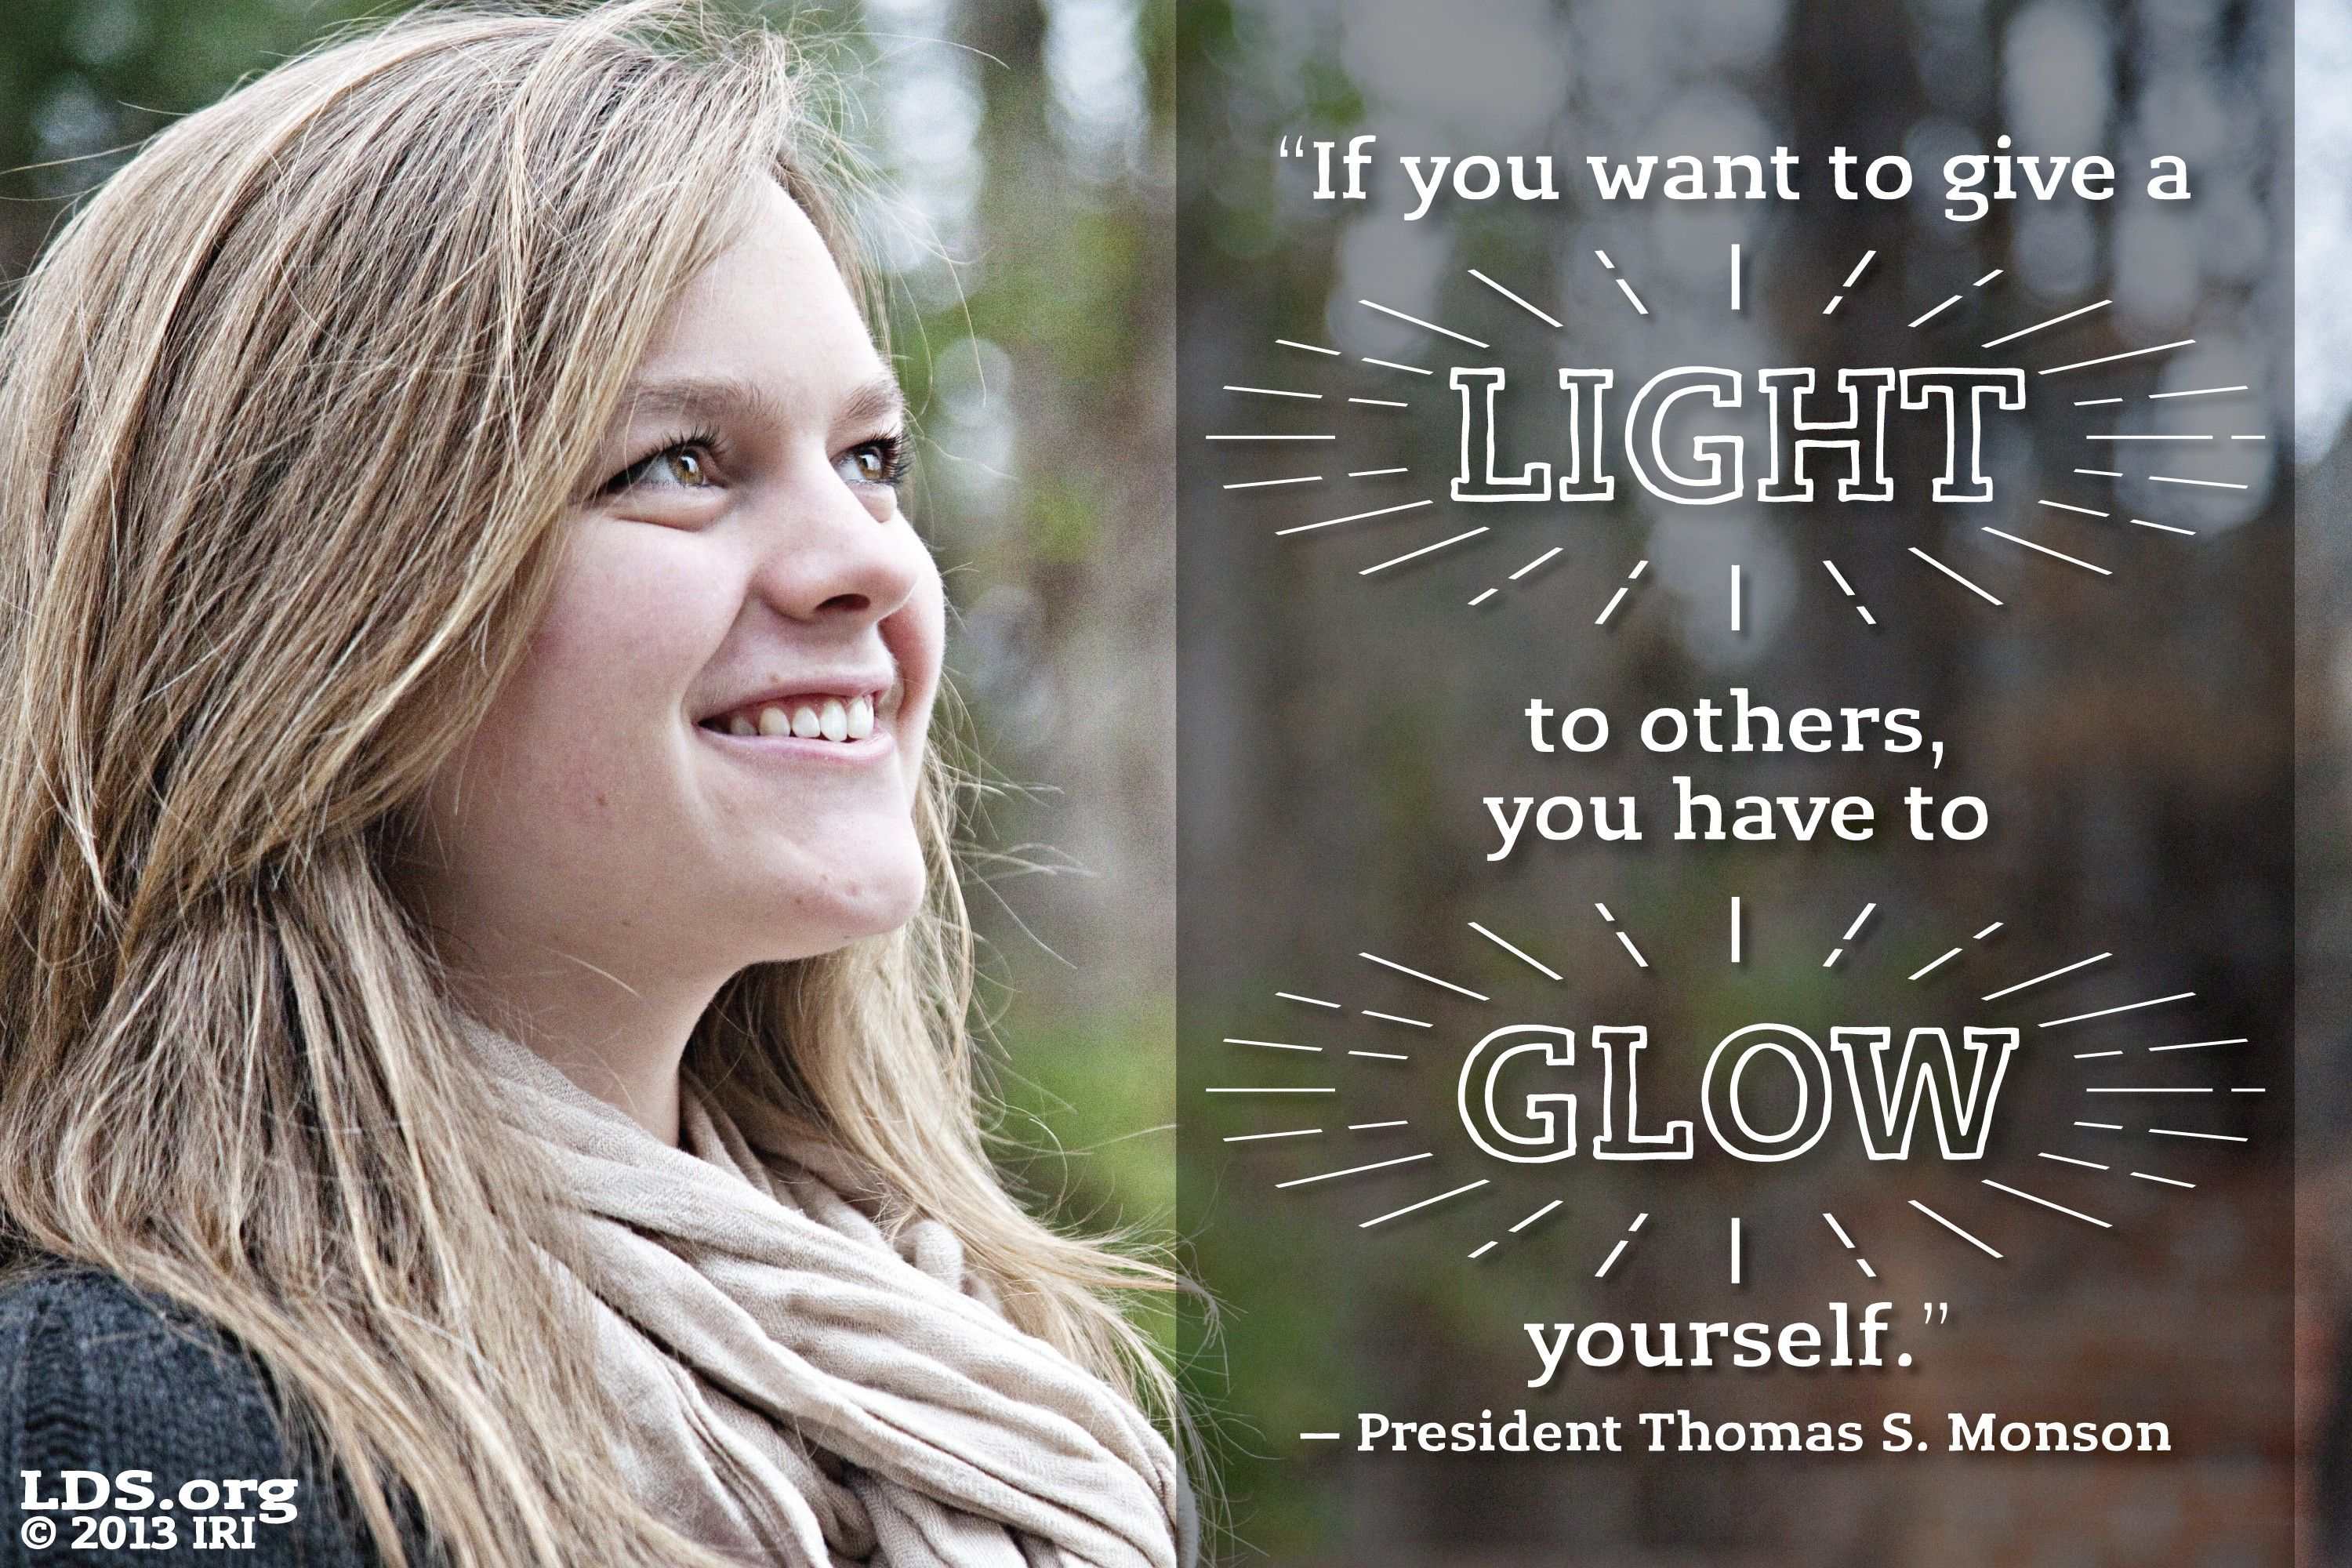 """""""If you want to give a light to others, you have to glow yourself.""""—President Thomas S. Monson, """"For I Was Blind, but Now I See."""""""